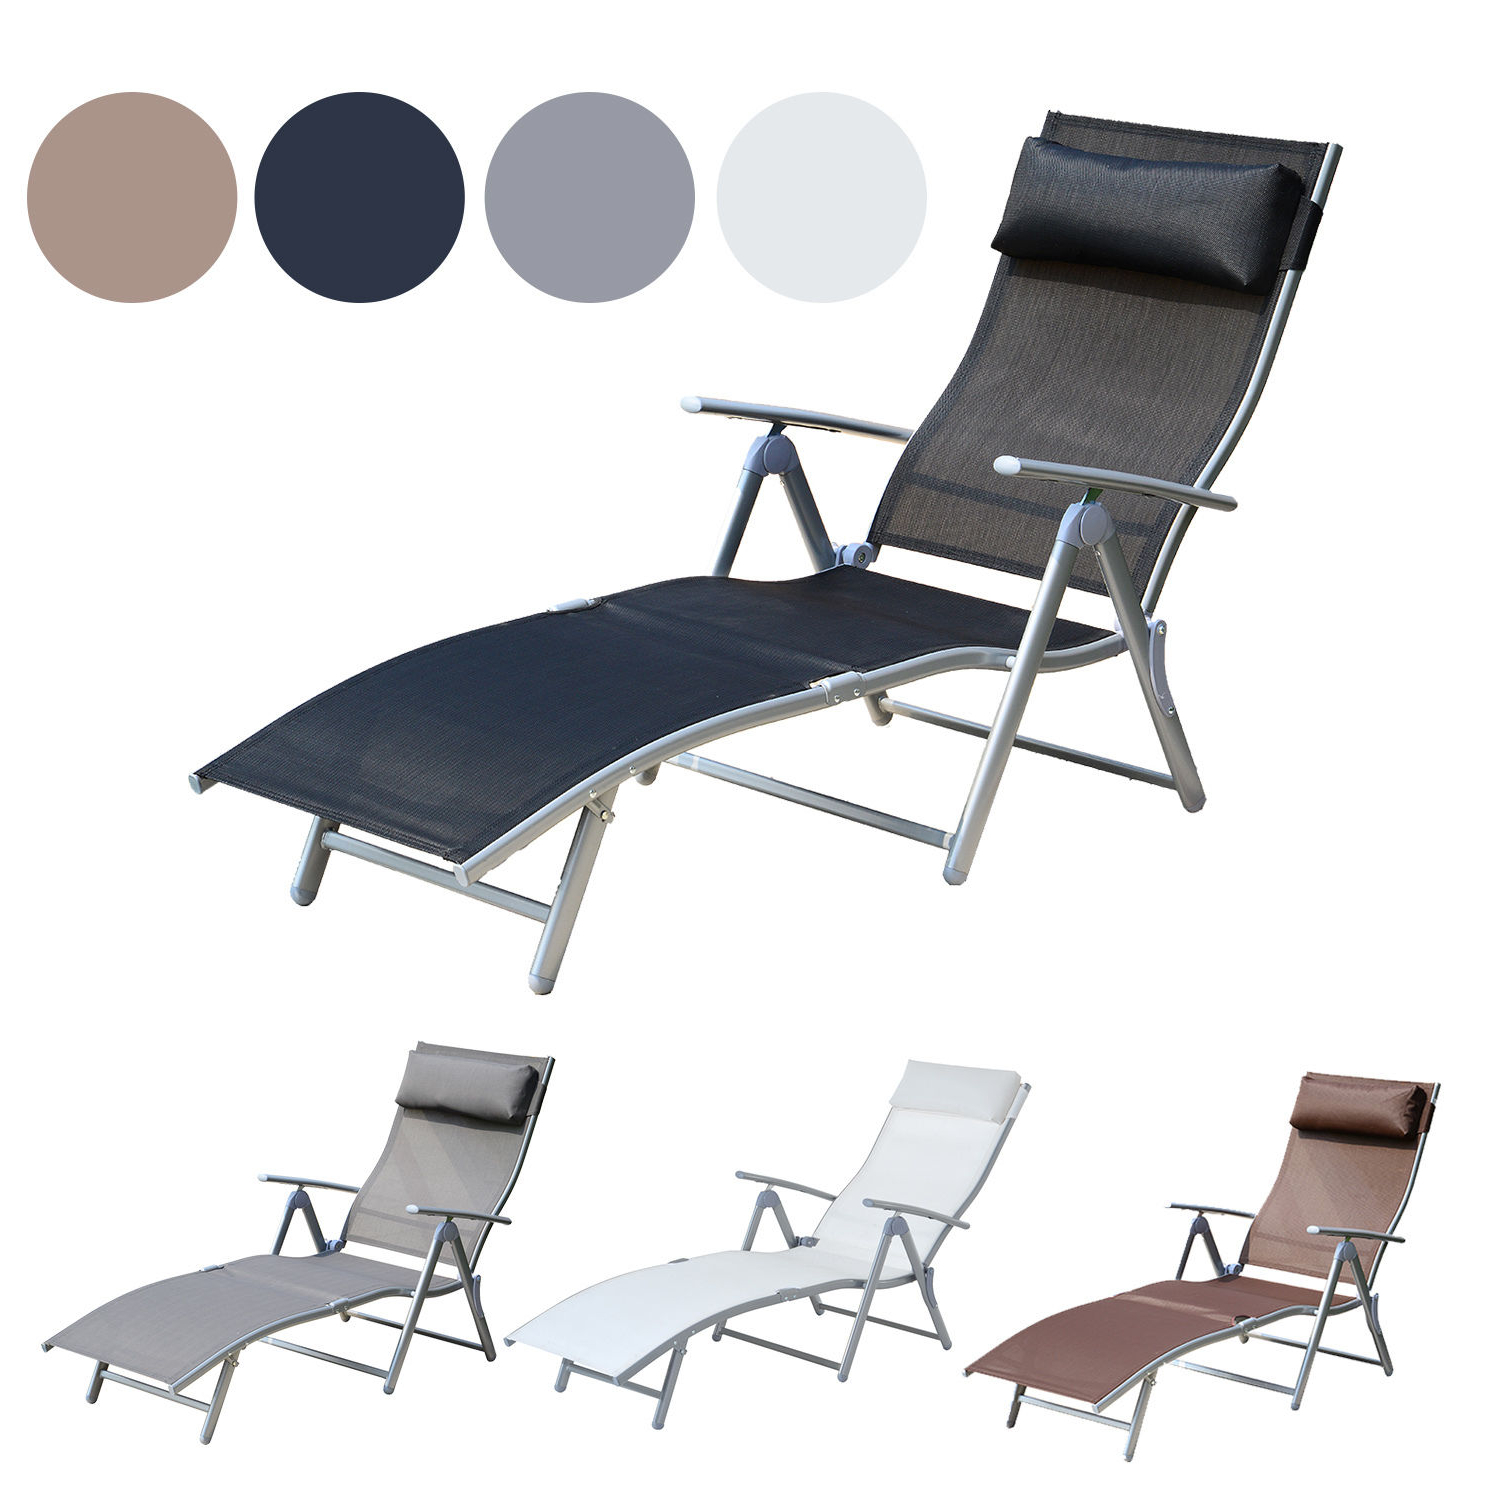 Mesh Fabric With Steel Frame Chairs With Canopy And Tray For Best And Newest Details About Chaise Lounge Chair Folding Pool Beach Yard Adjustable Patio Furniture Recliner (Gallery 9 of 25)